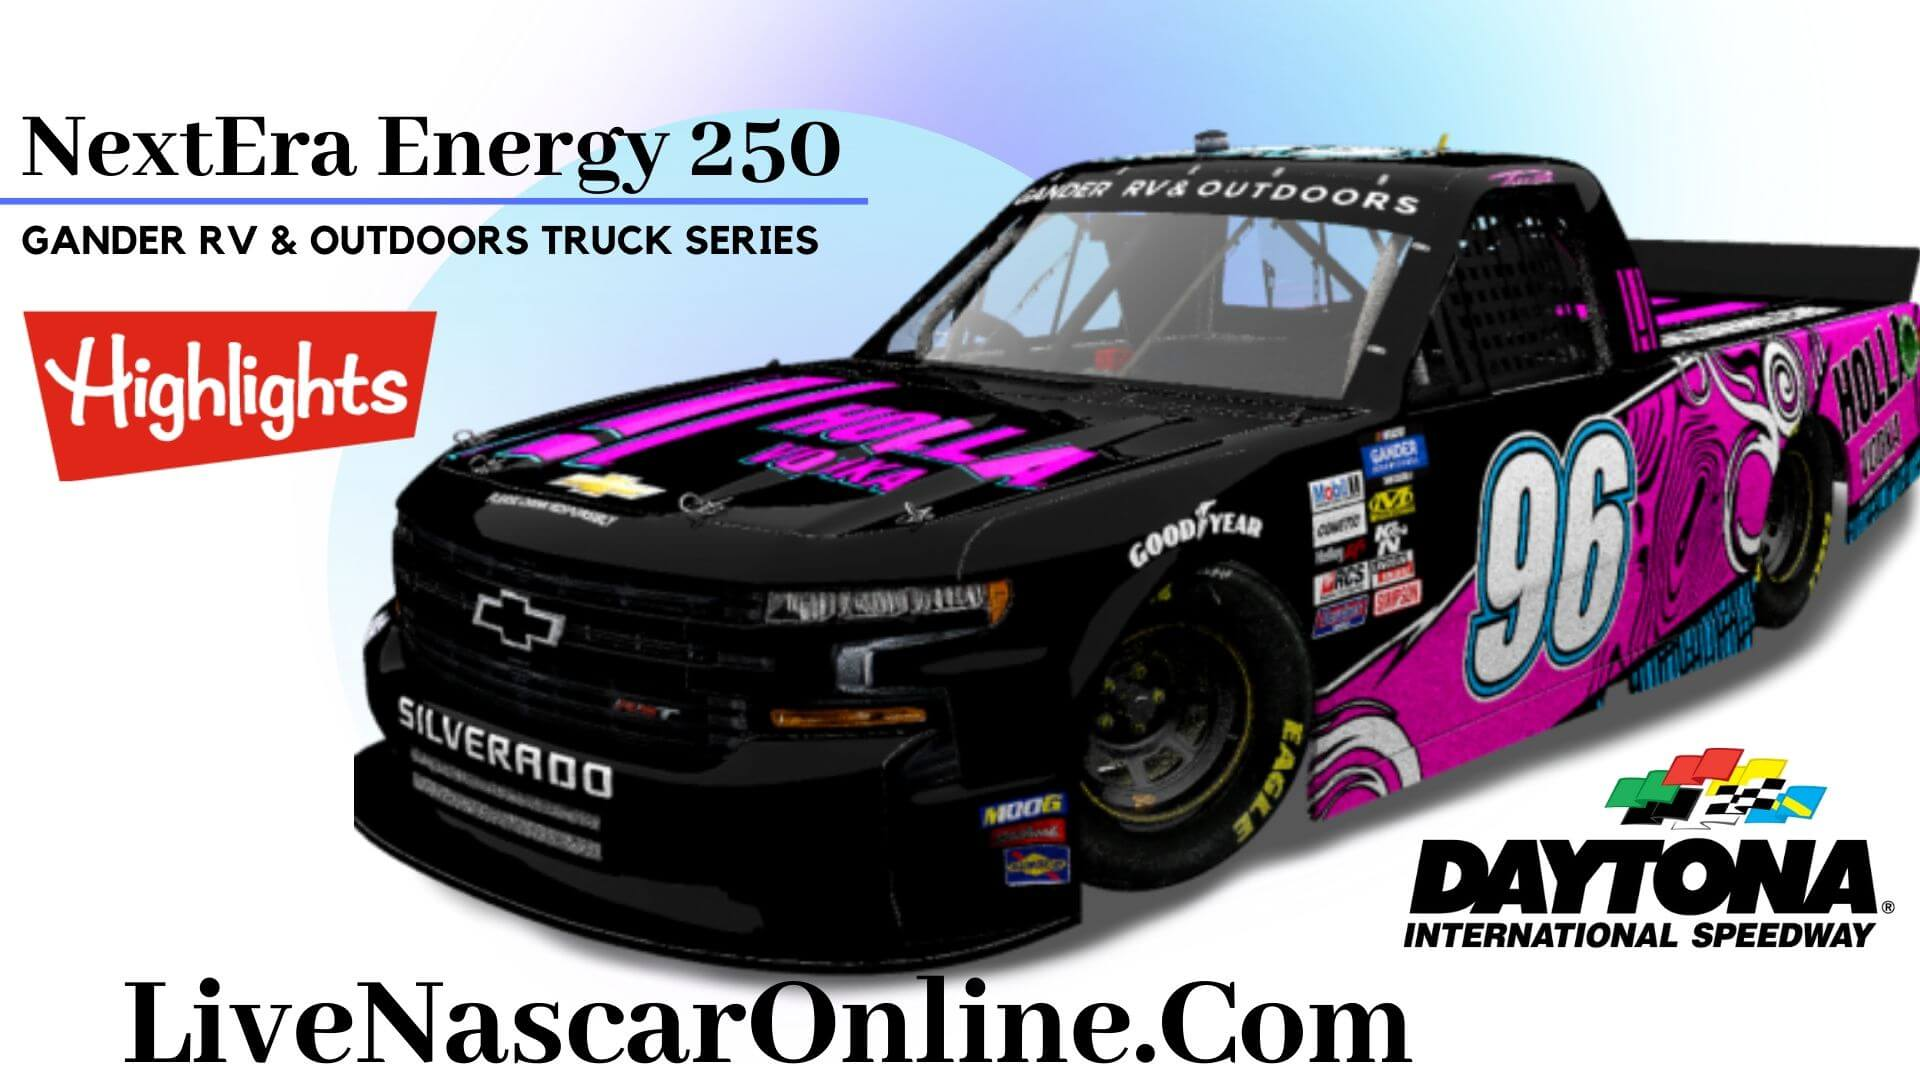 NEXTERA ENERGY 250 HIGHLIGHTS 2020